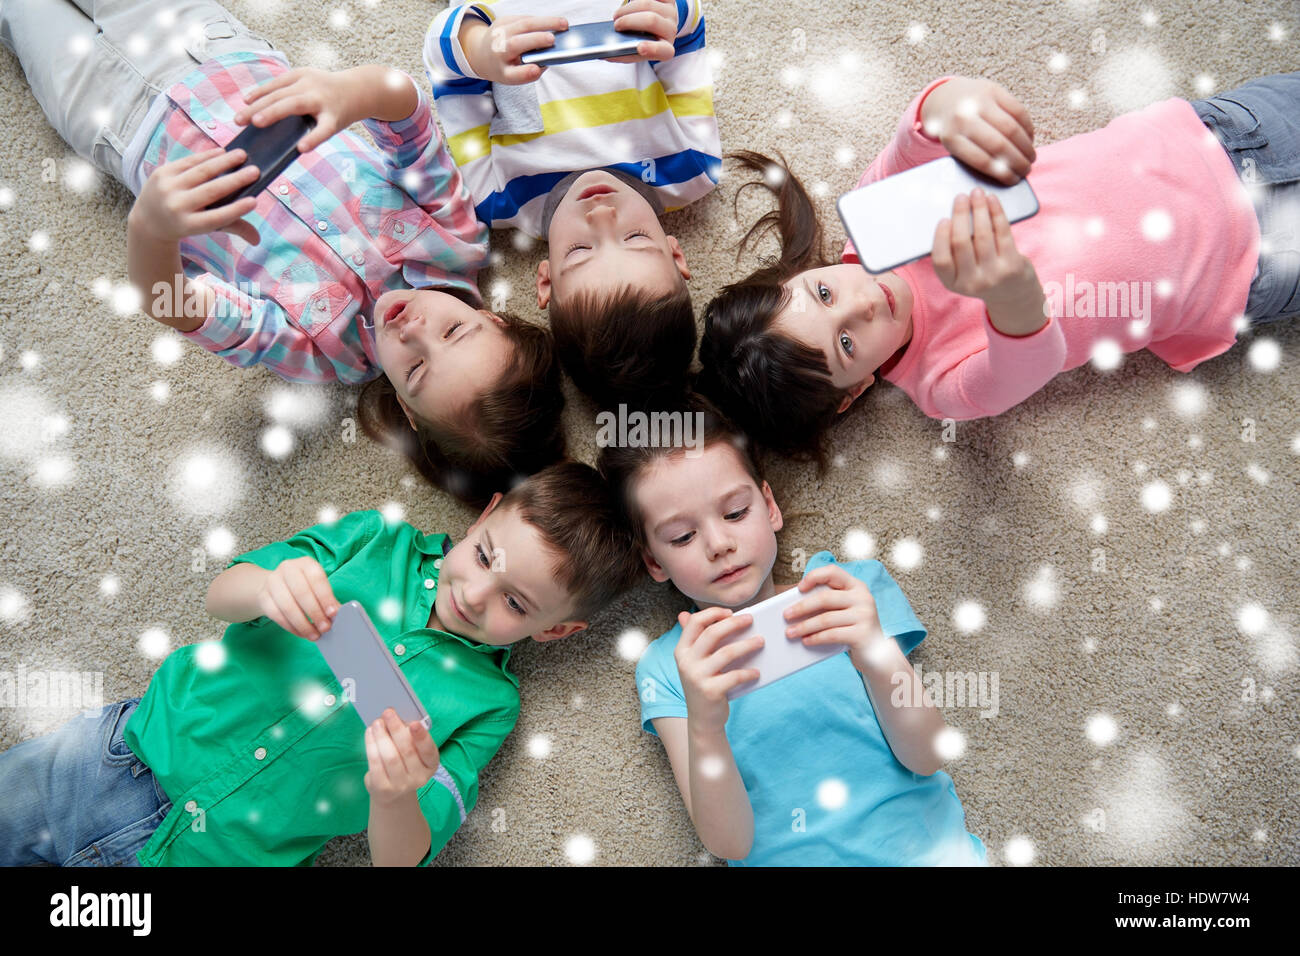 children with smartphones lying on floor - Stock Image